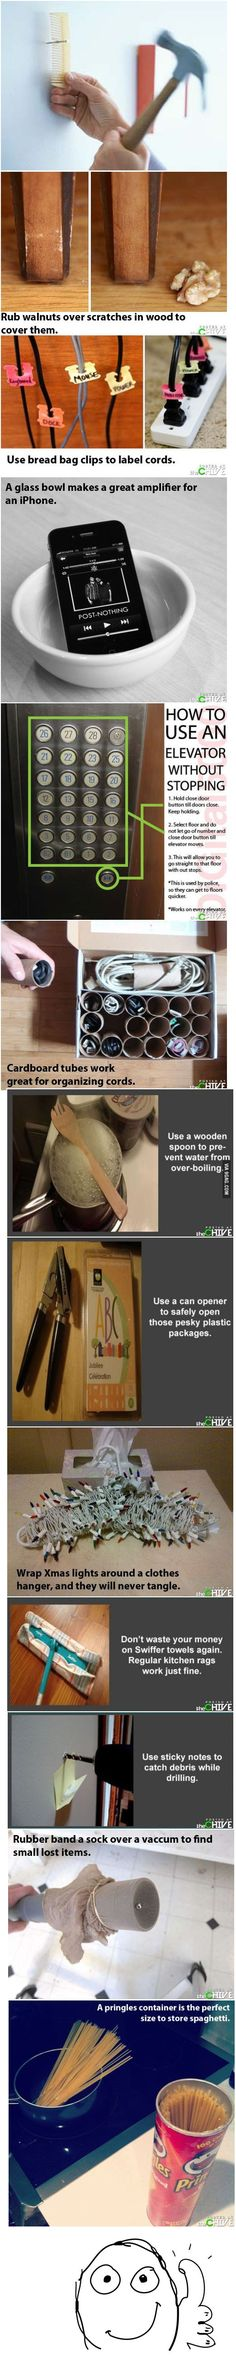 Saving this for the comb to hold a nail idea, and Christmas lights stored around metal hanger idea